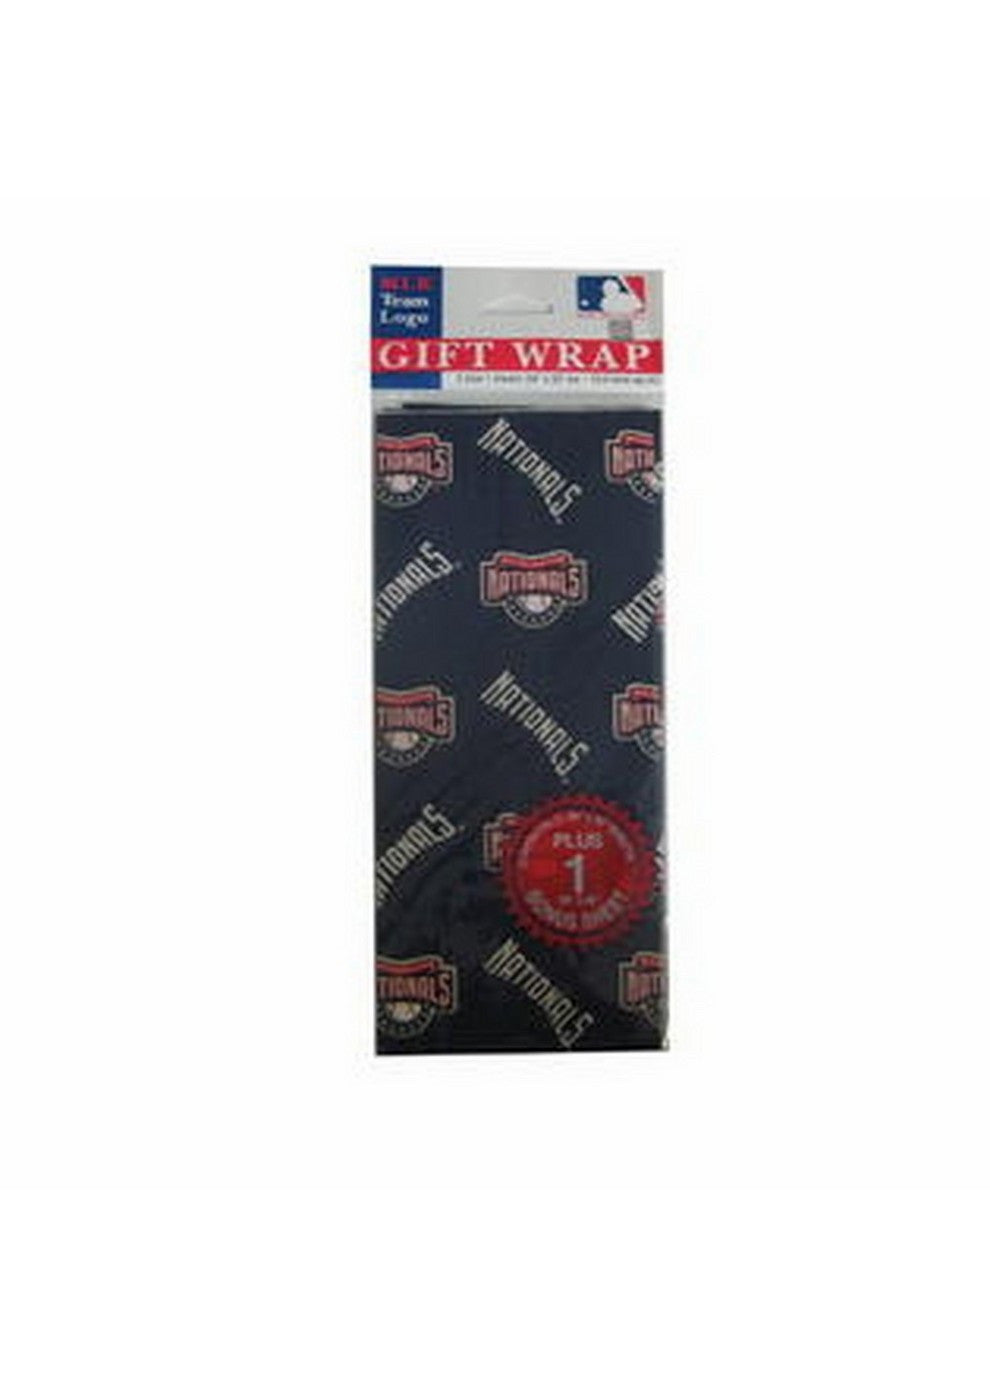 2 Packages of MLB Gift Wrap Nationals